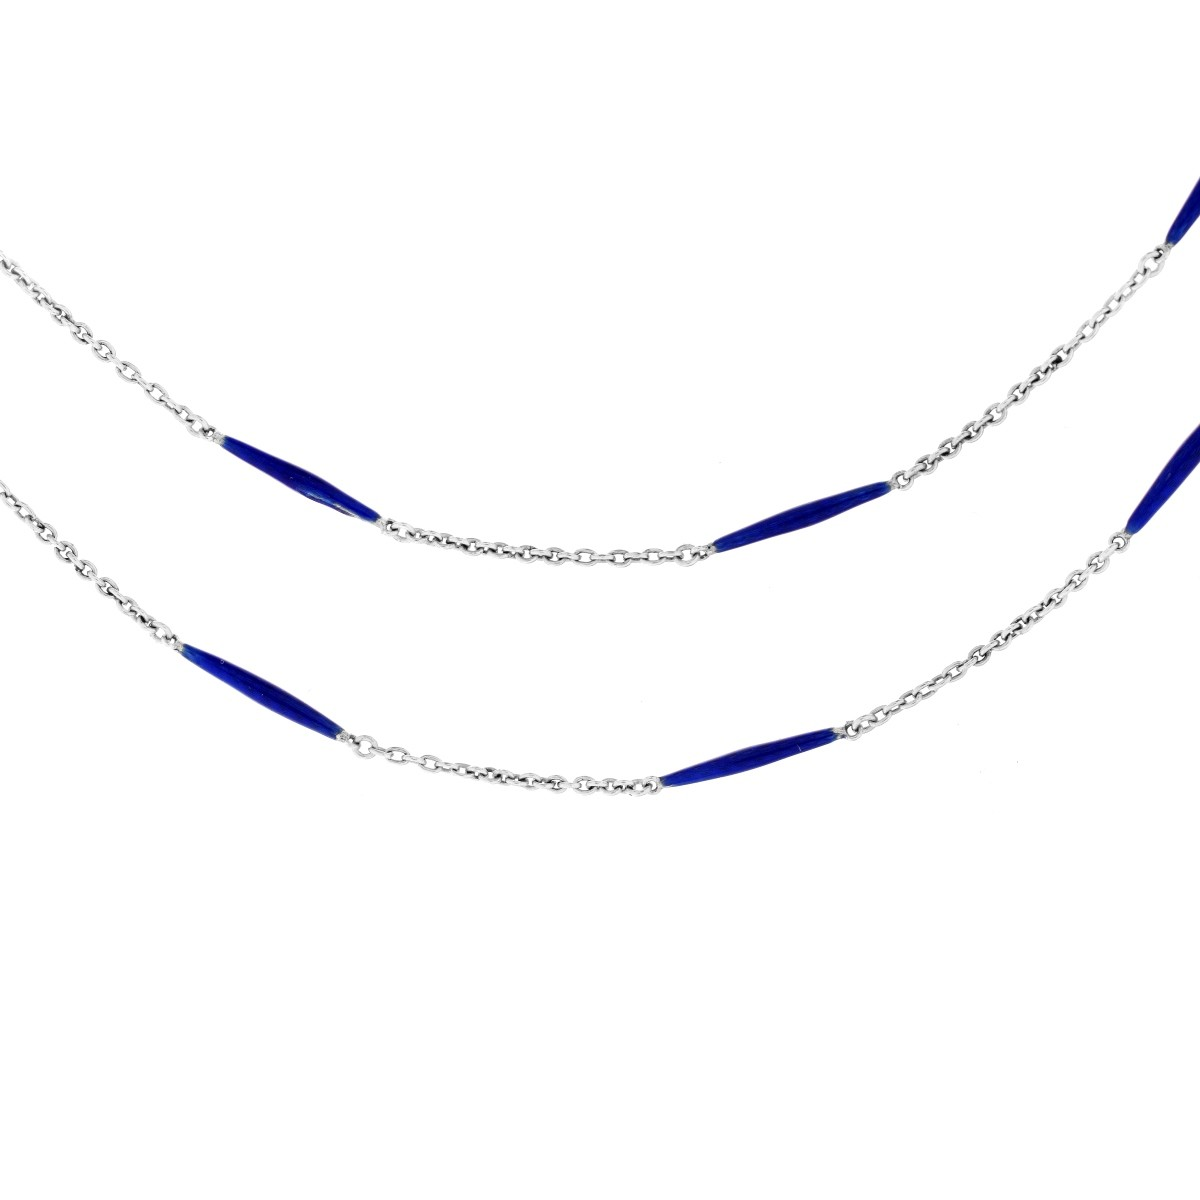 Lot 130 - Vintage 14K and Enamel Chain.